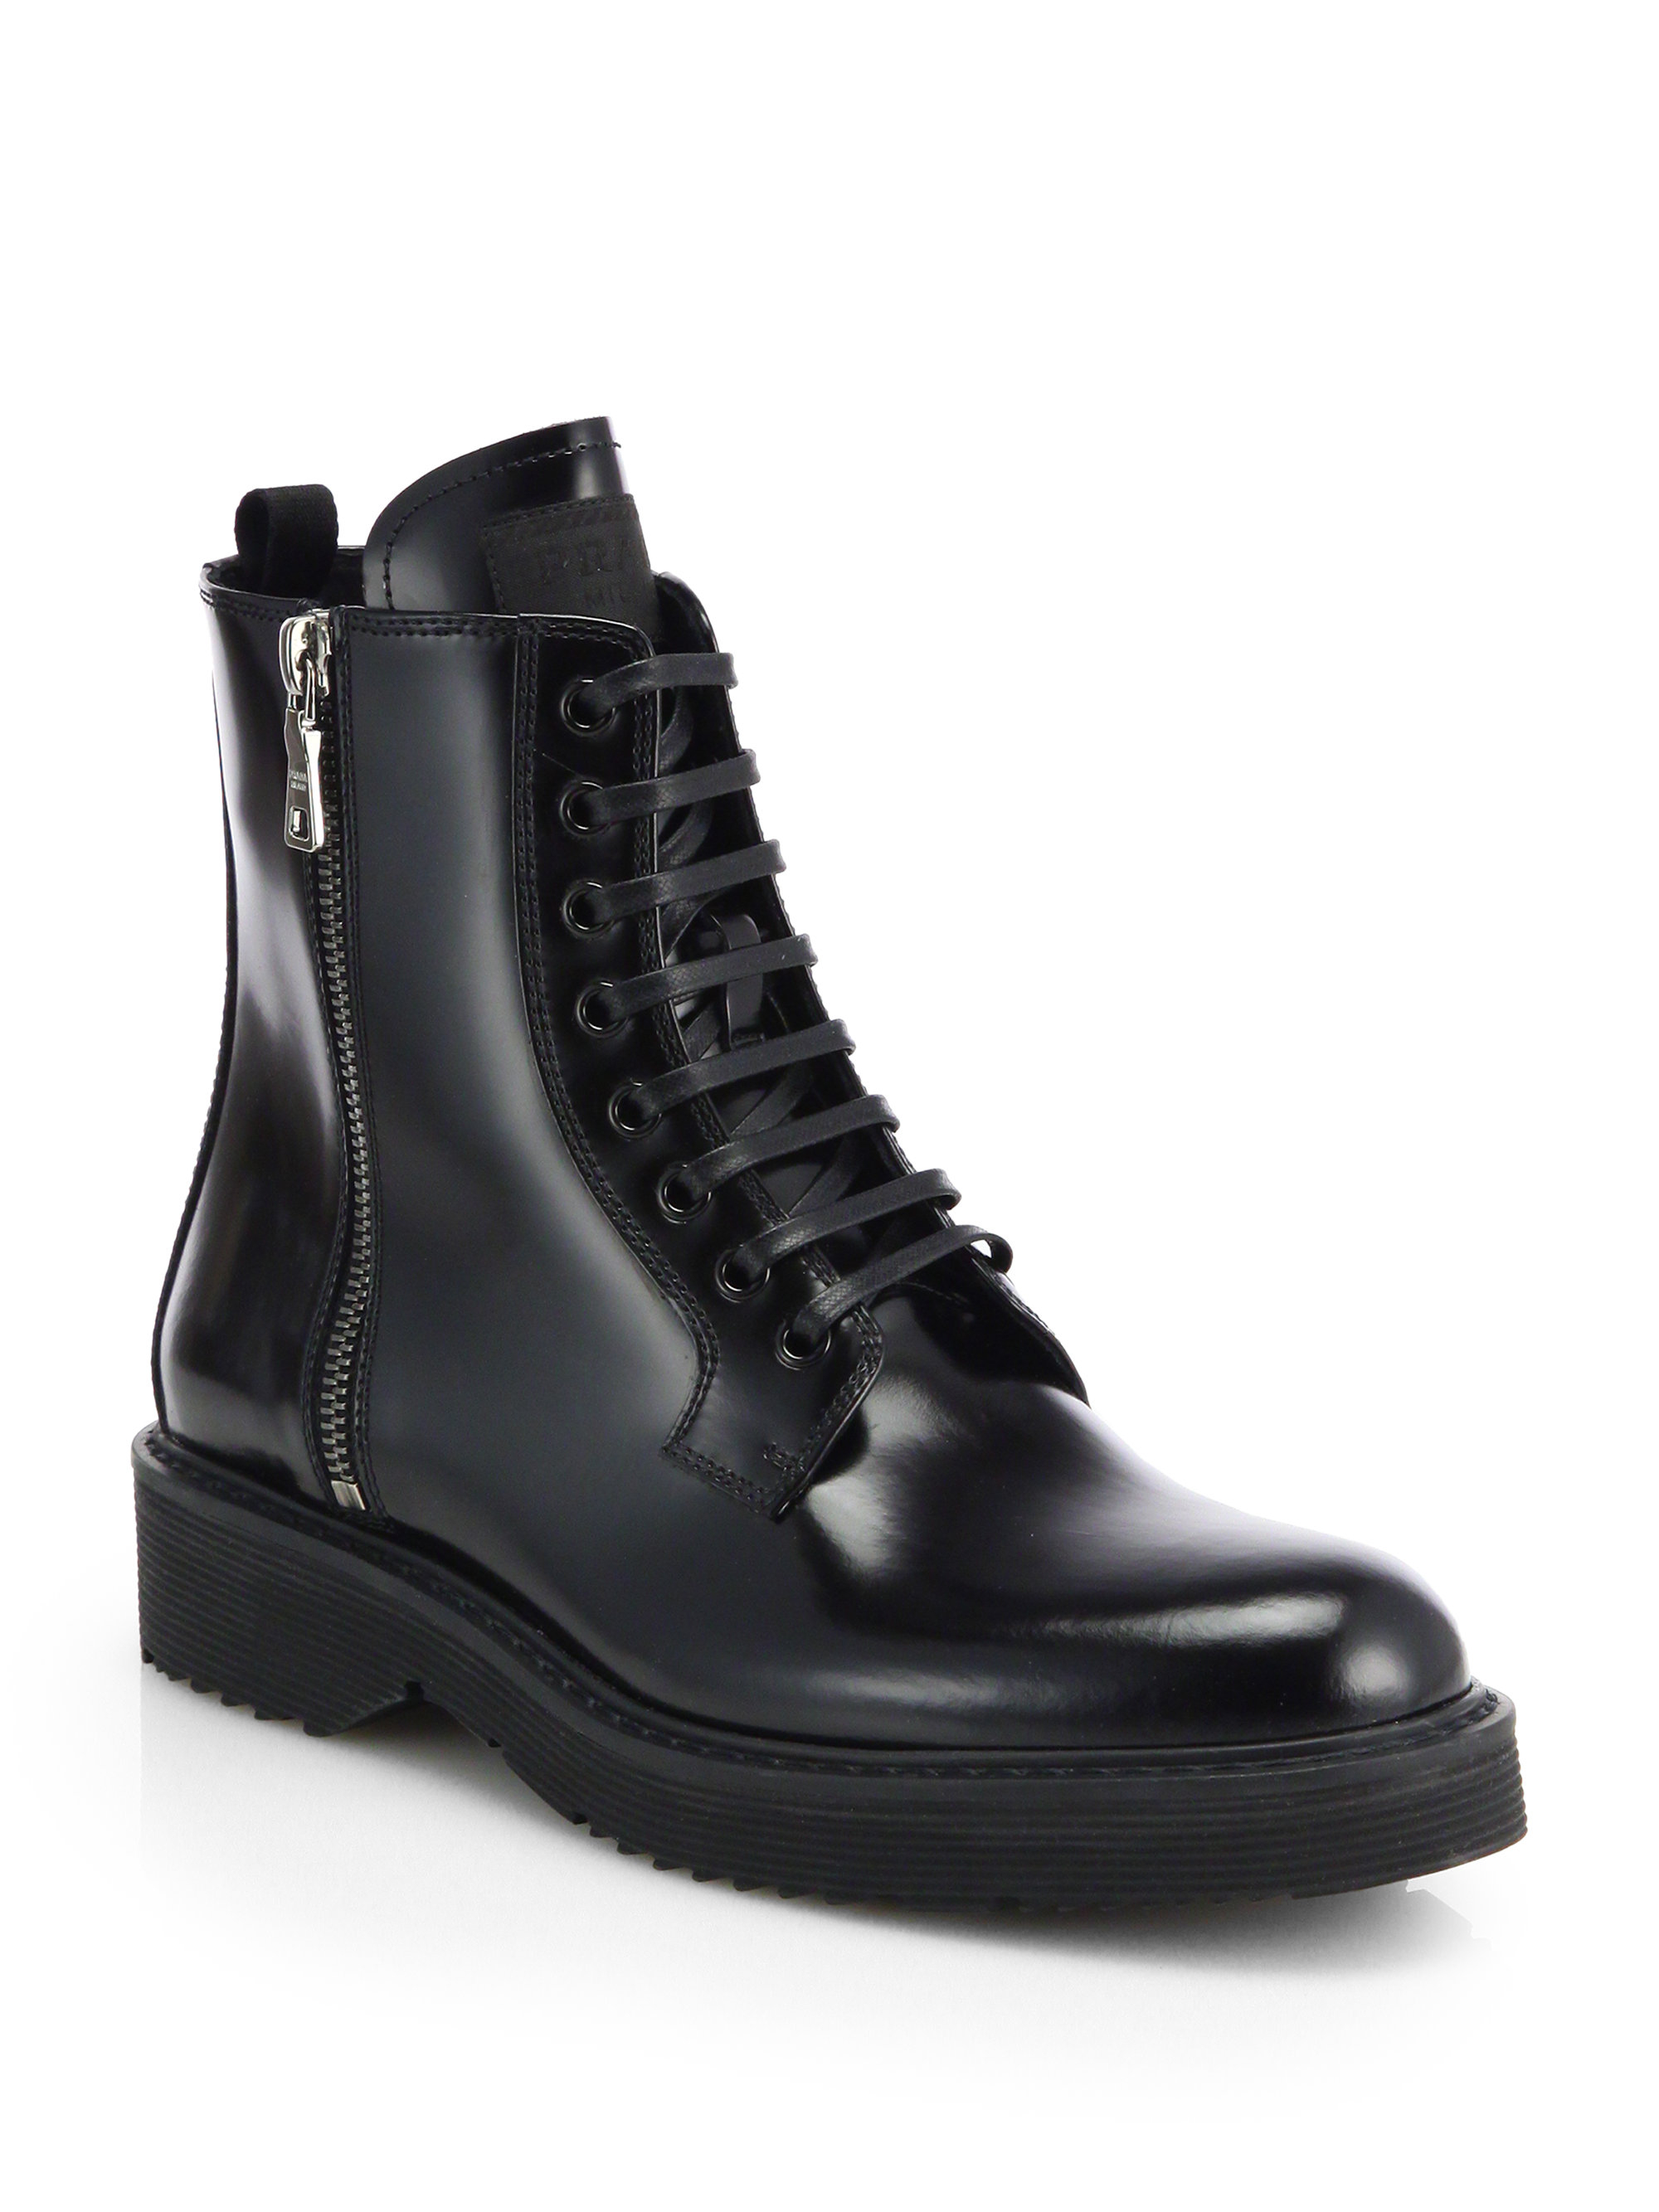 Prada Patent Leather Laceup Combat Boots in Black | Lyst